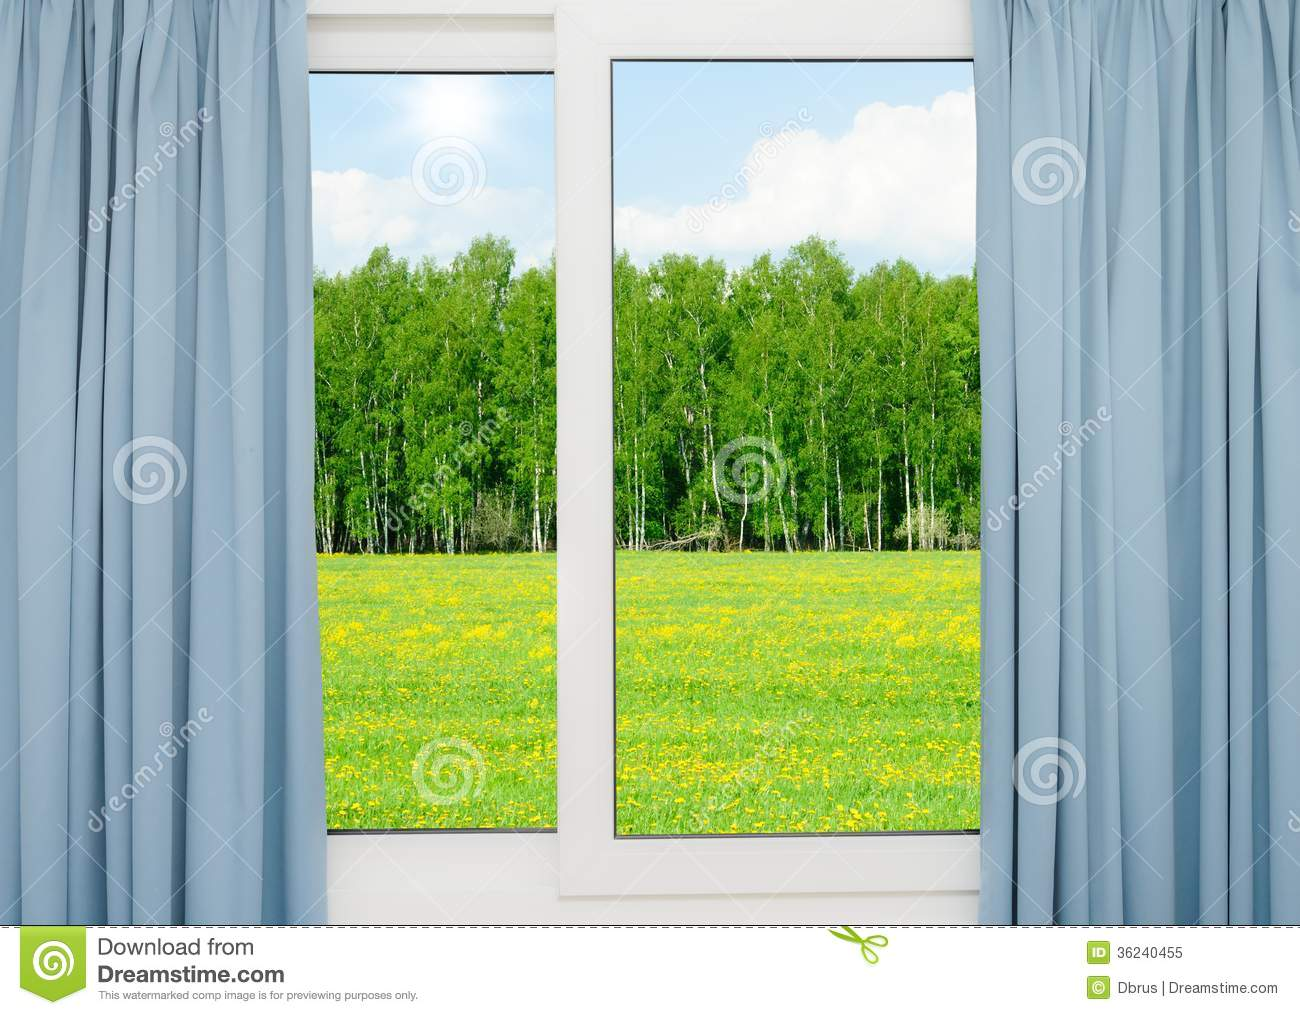 nature landscape with a view through a window with